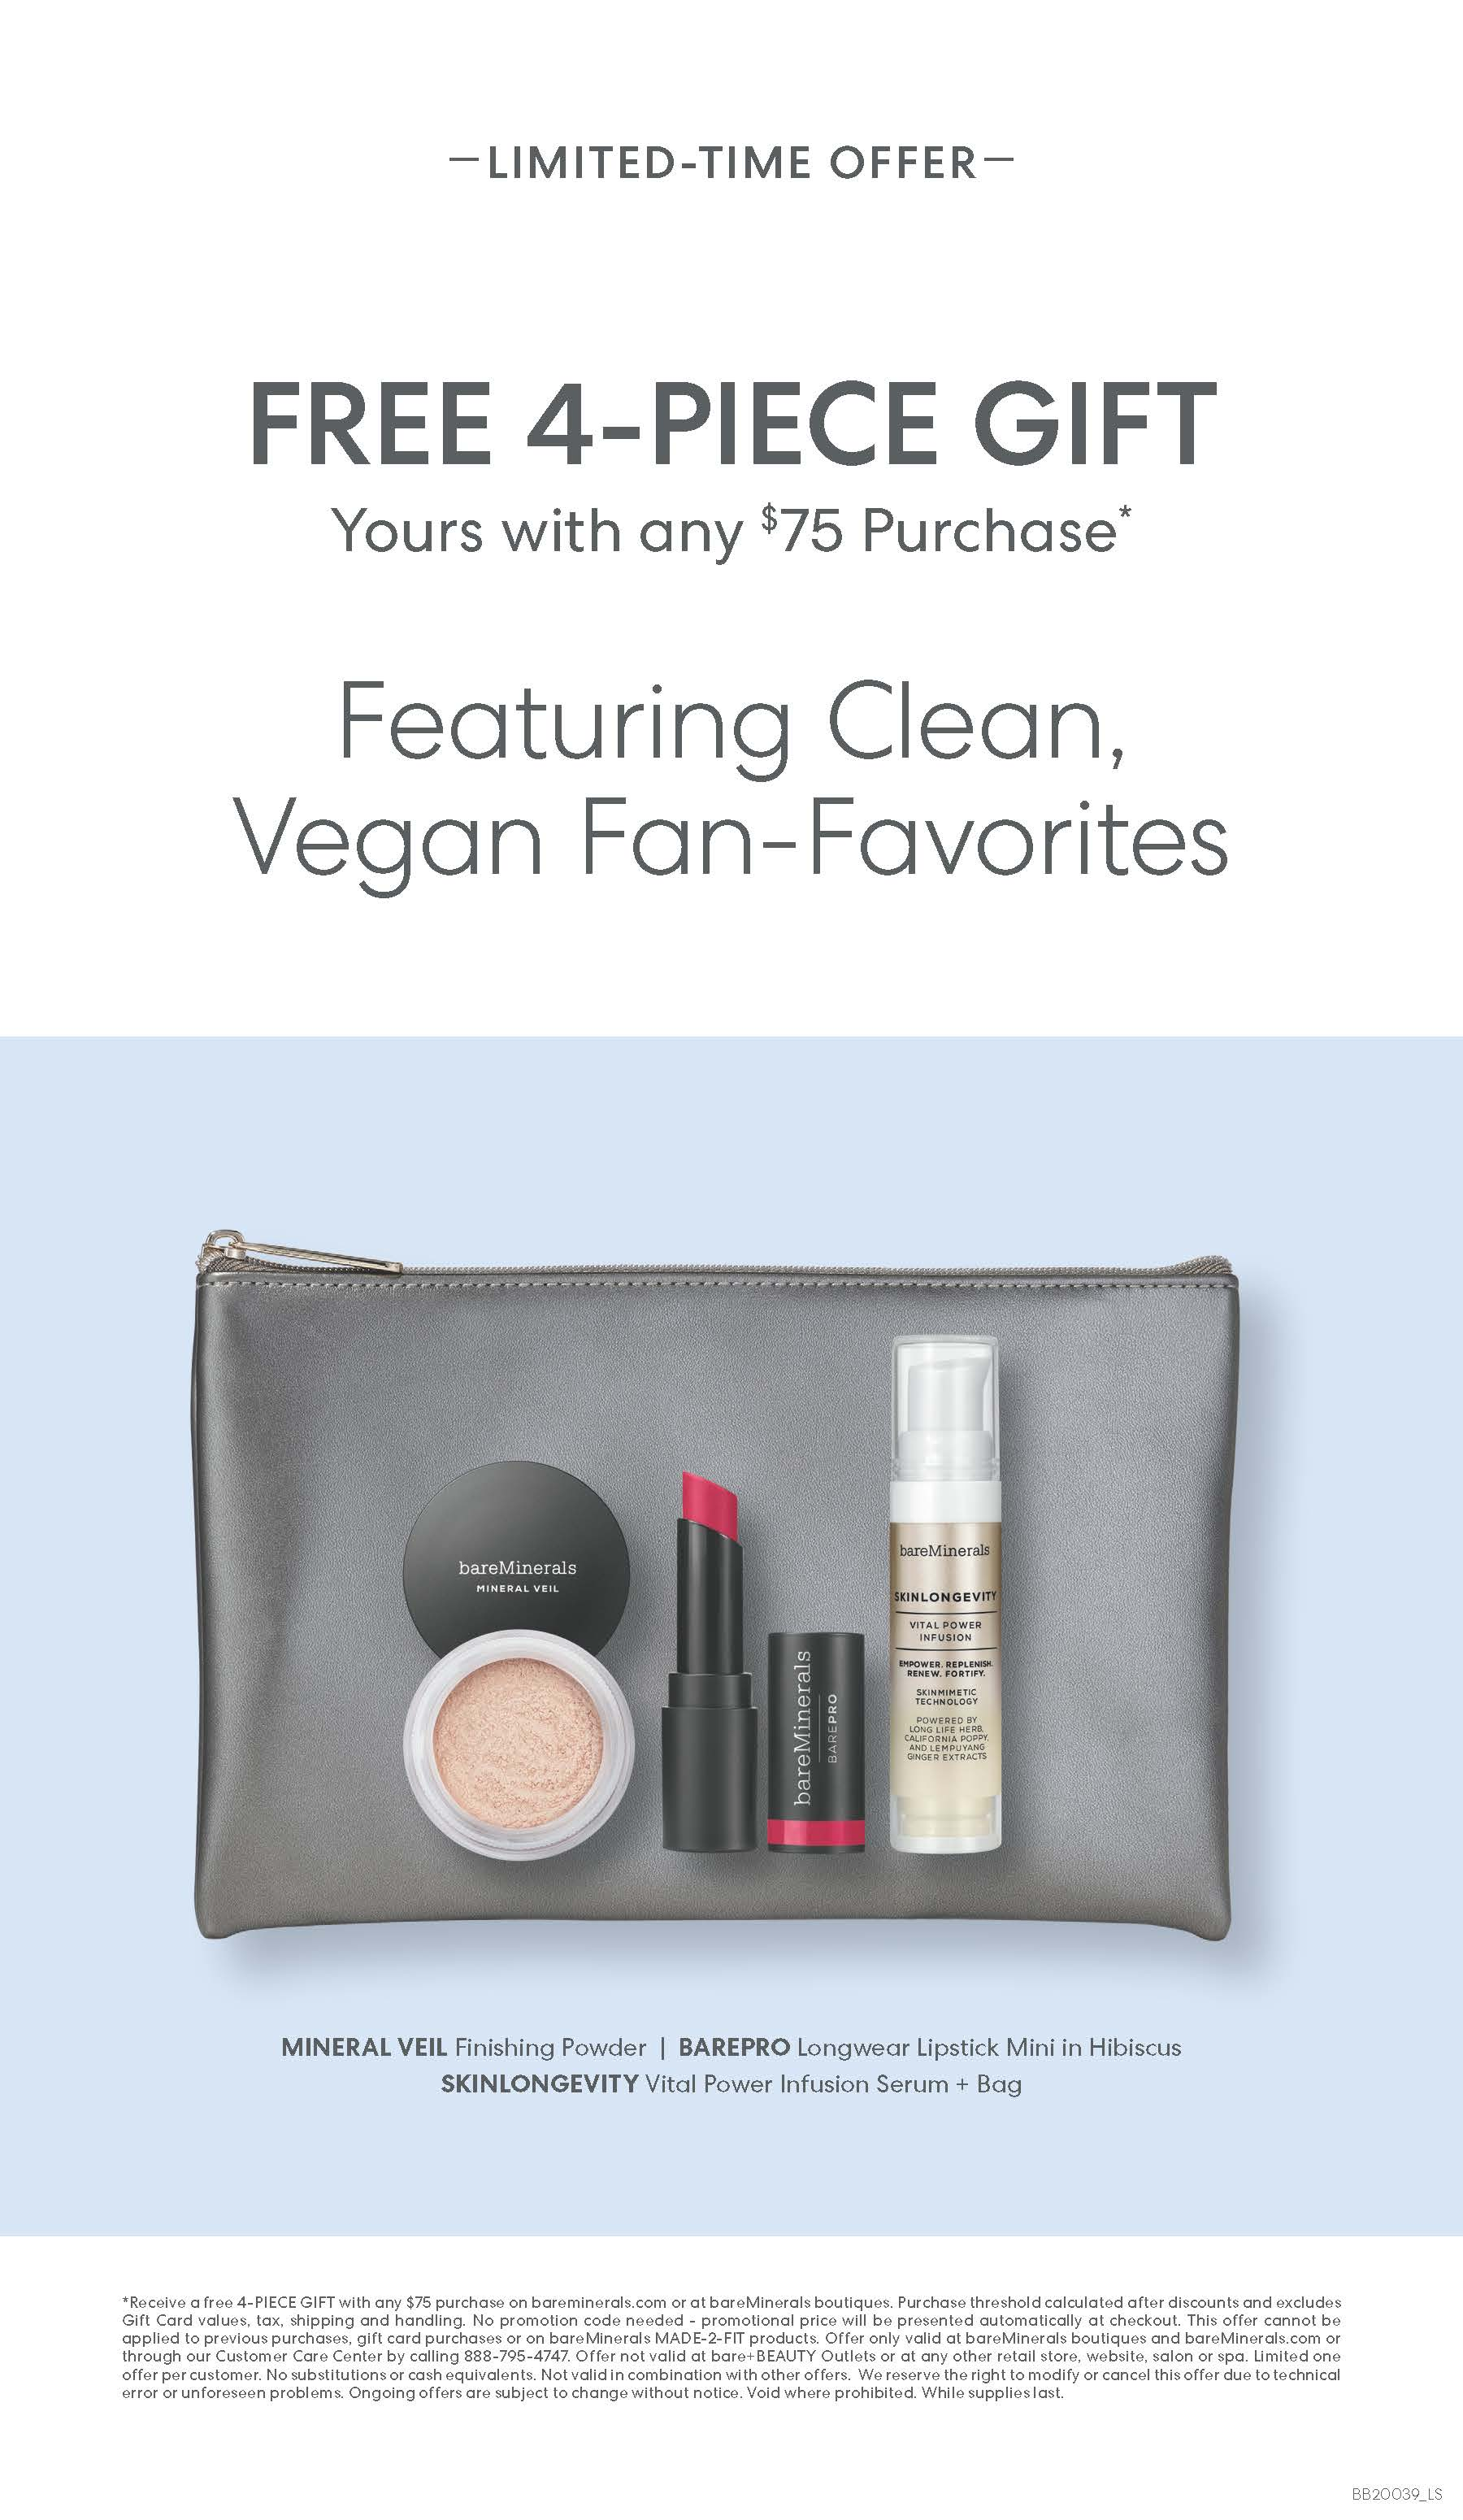 Free 4-Piece Gift from bareMinerals